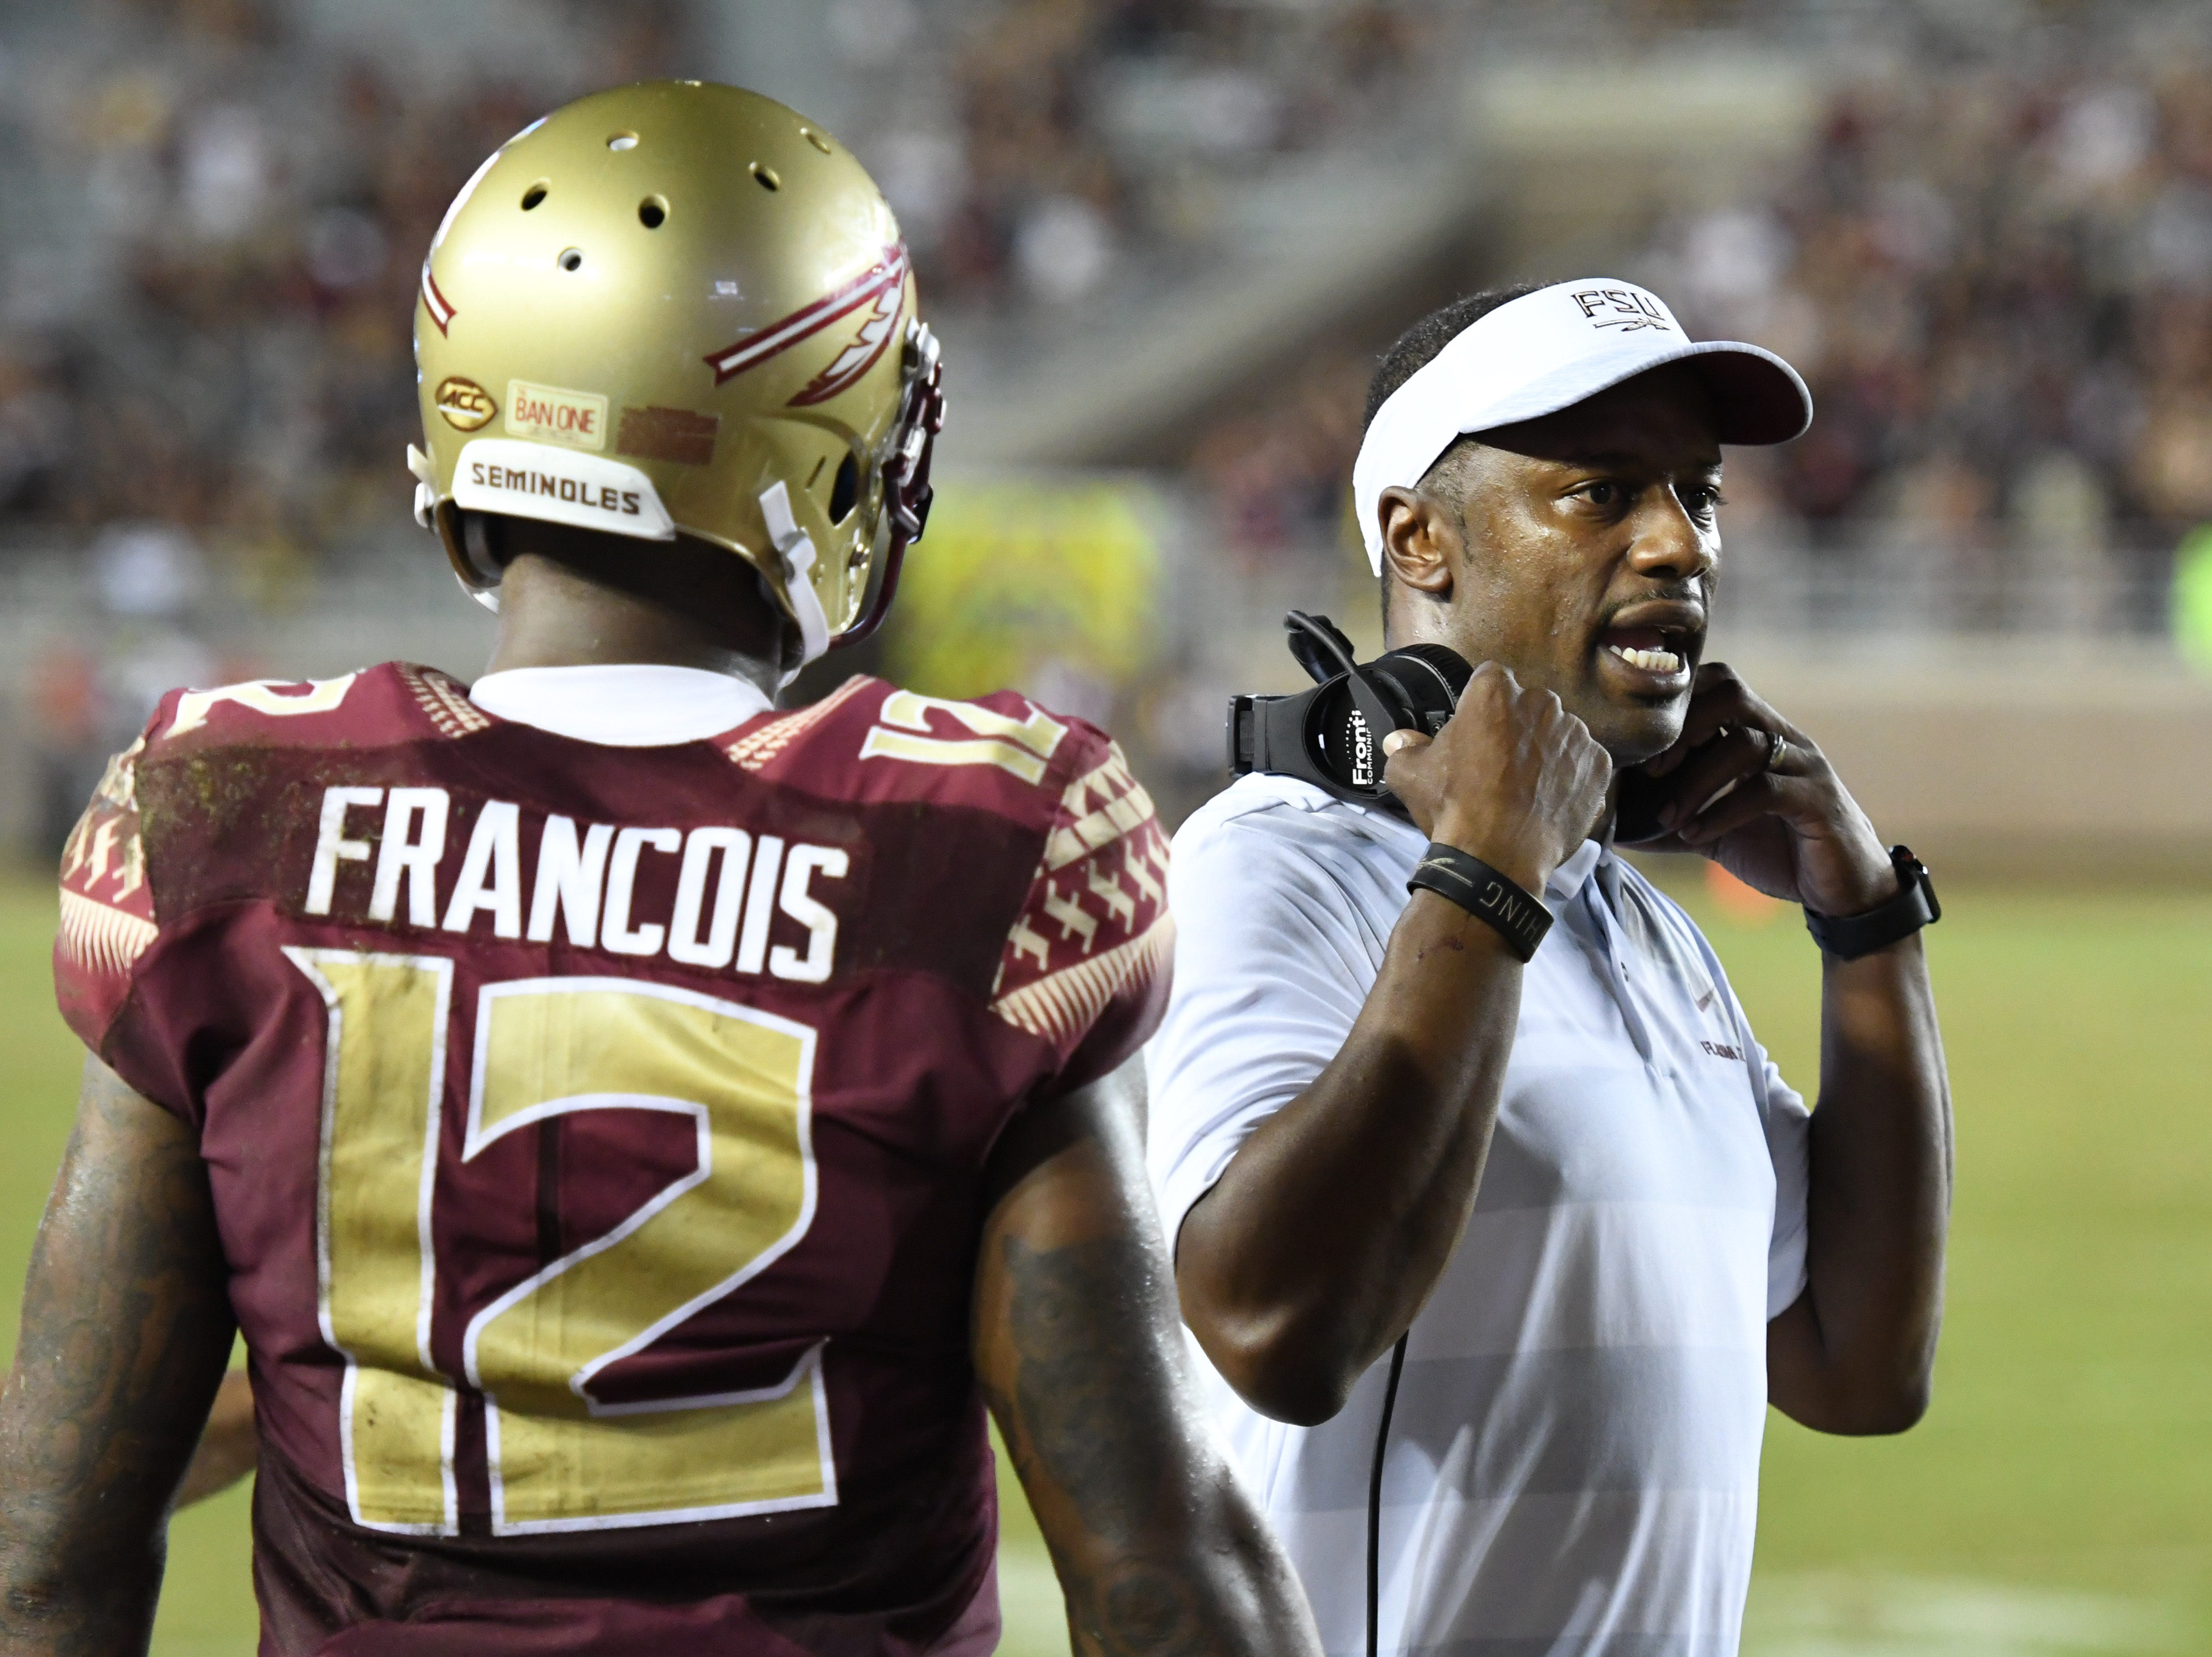 FSU head coach Willie Taggart speaking to an official during the thrid quarter of FSU's game against Samford on Saturday night at Doak Campbell Stadium.